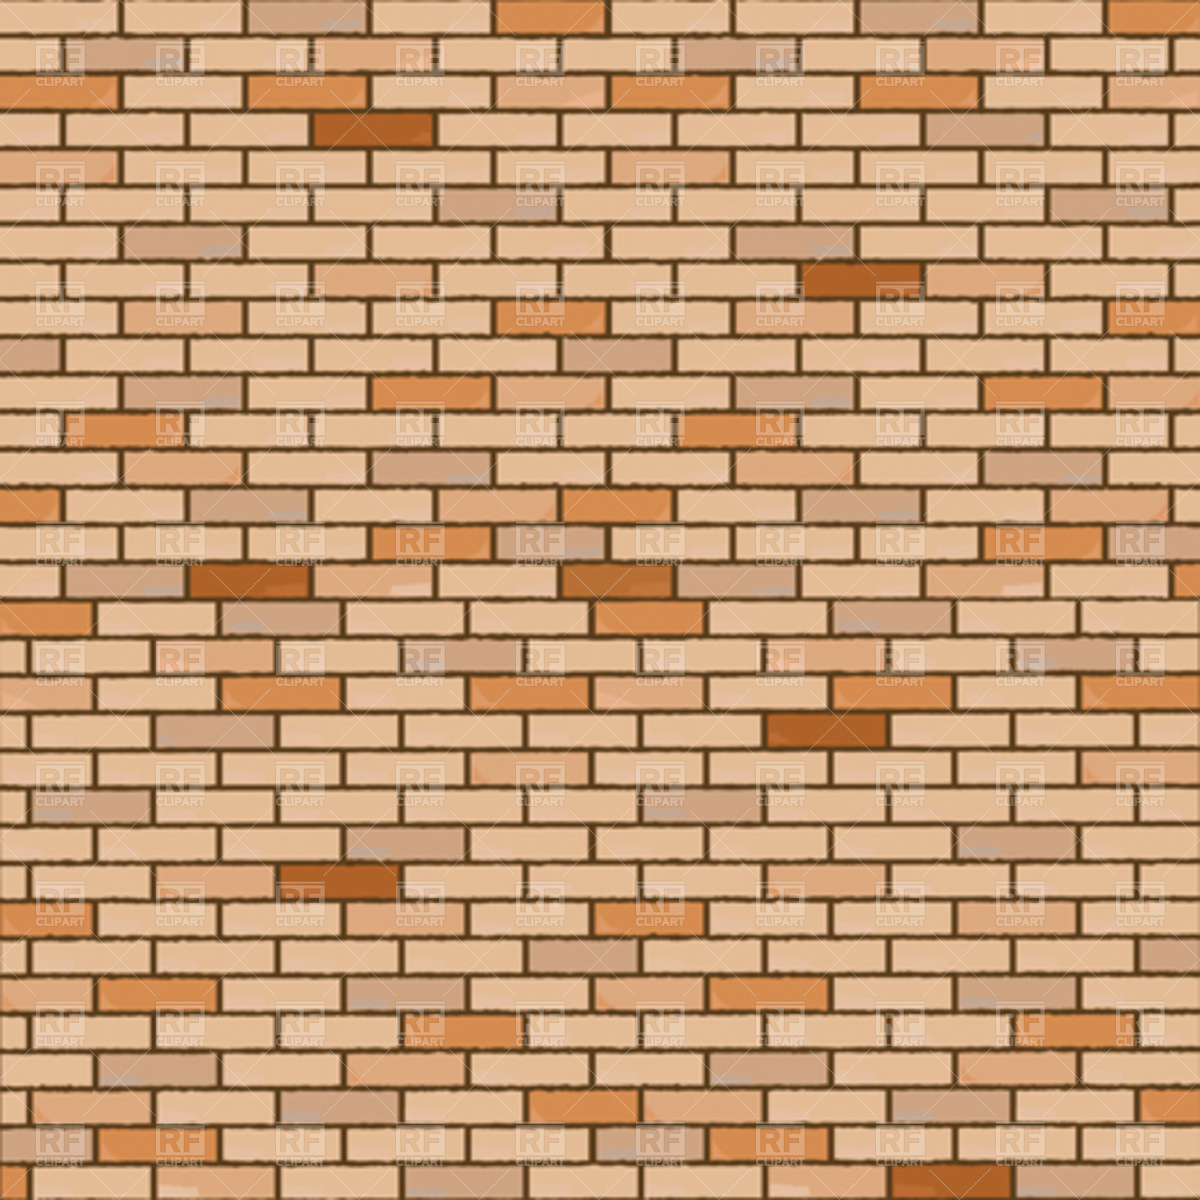 Wall made of bricks Vector Image #4375.